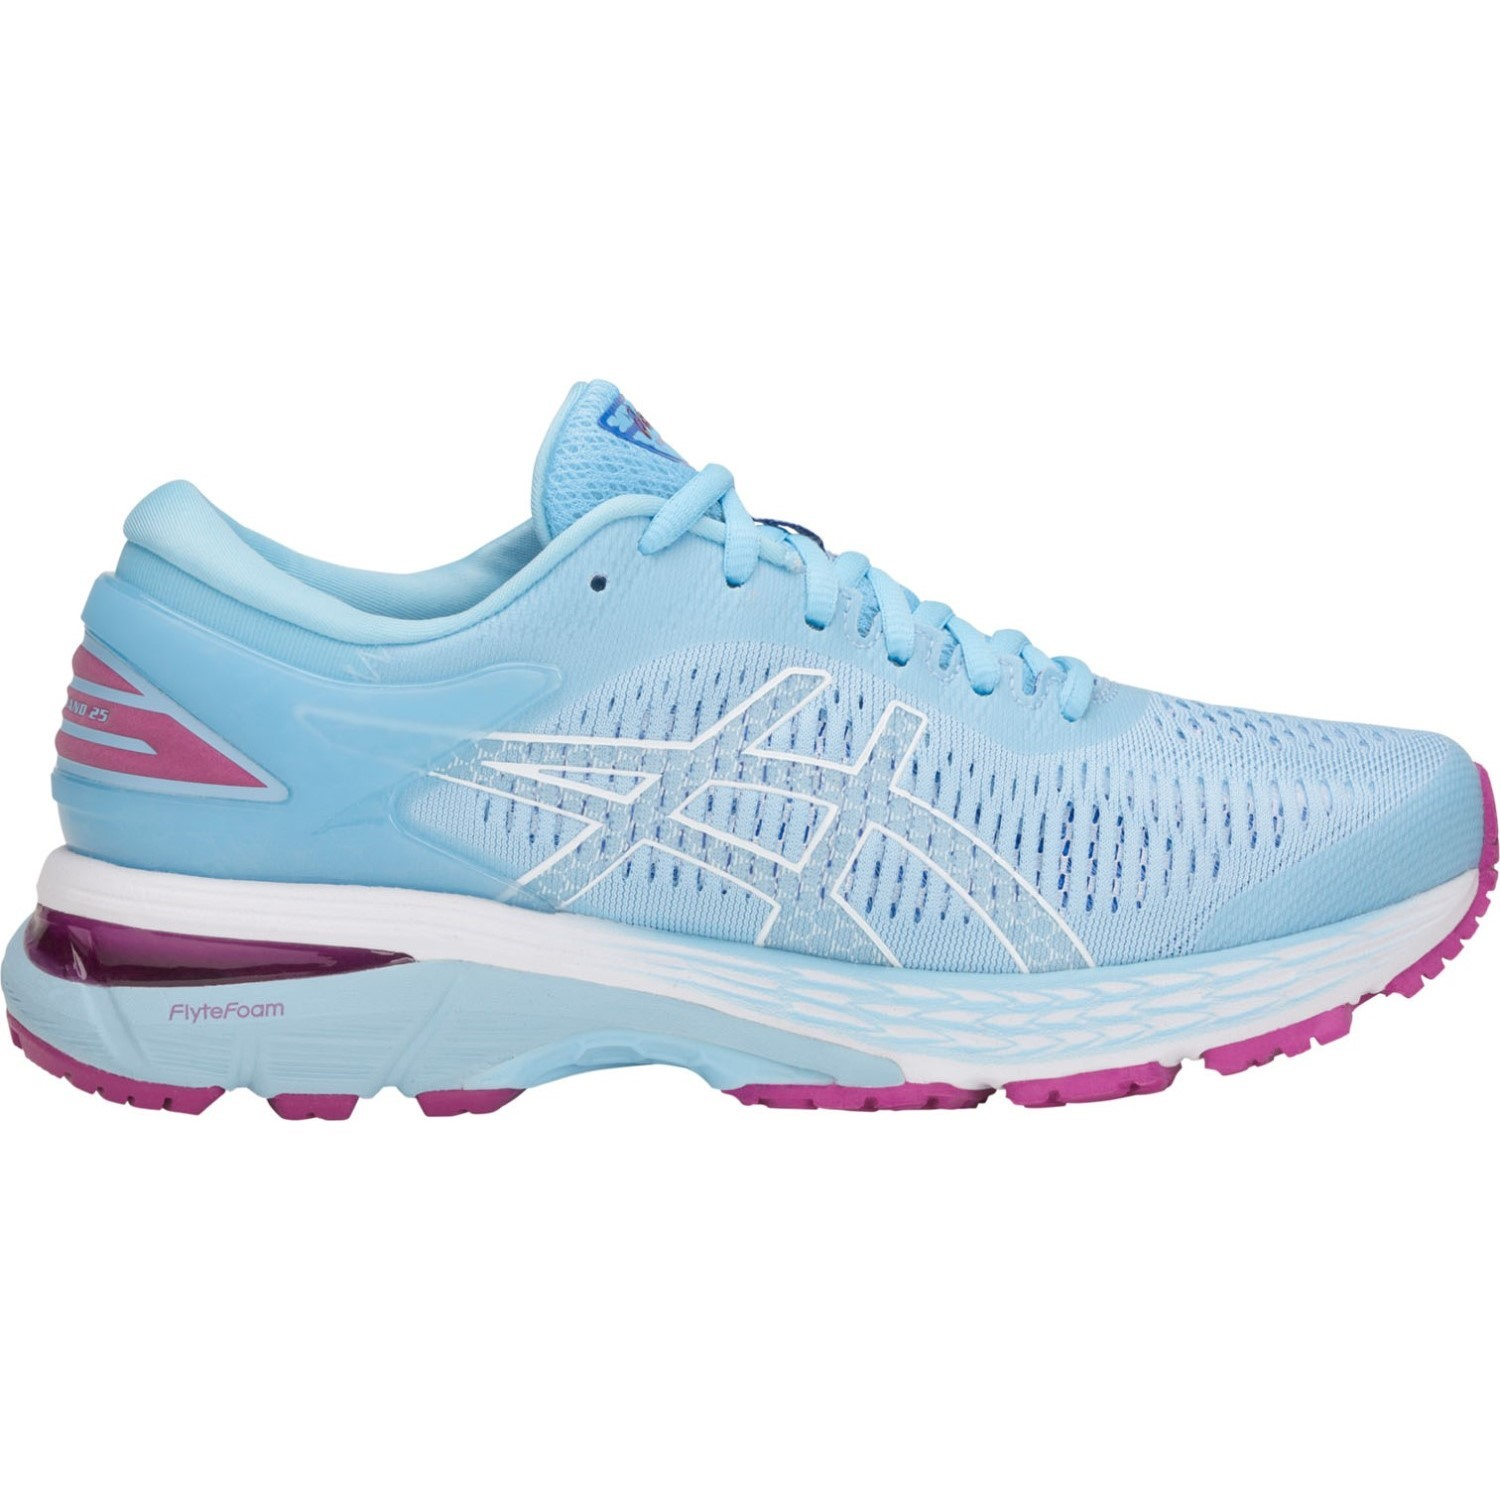 low priced c7287 c31cd Asics Gel Kayano 25 - Womens Running Shoes